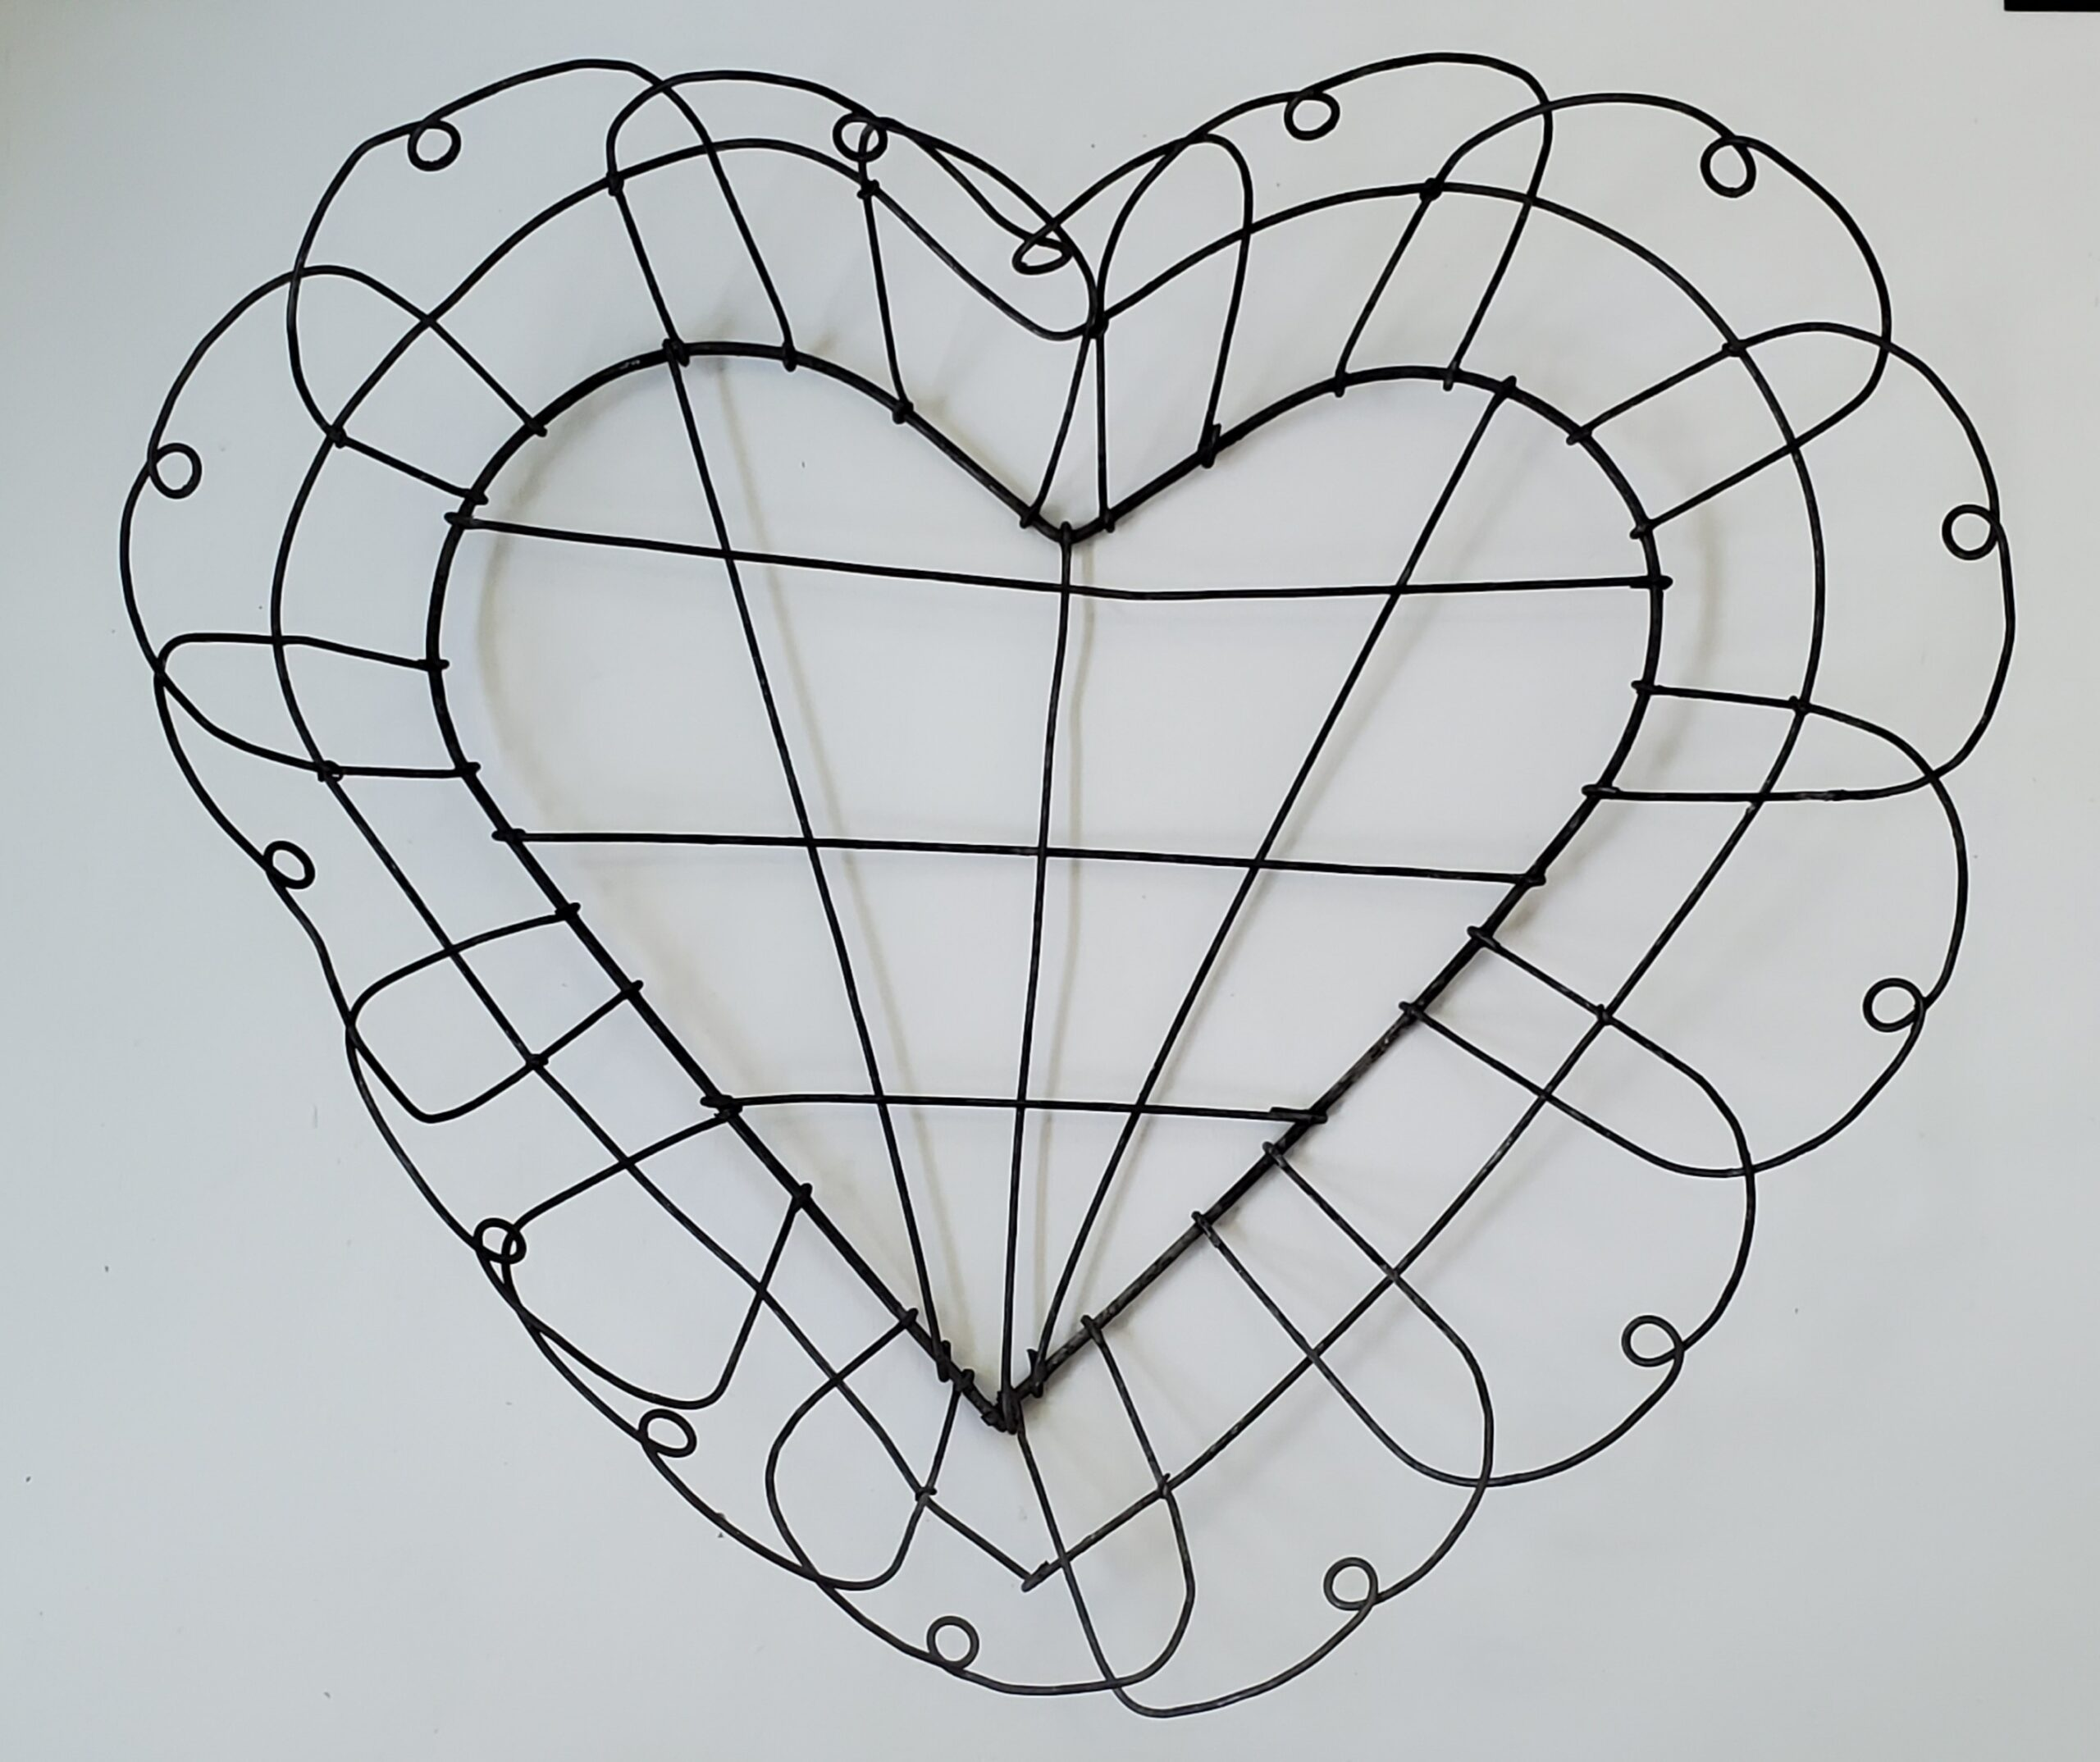 Vintage wire heart basket Valentine's Day ideas